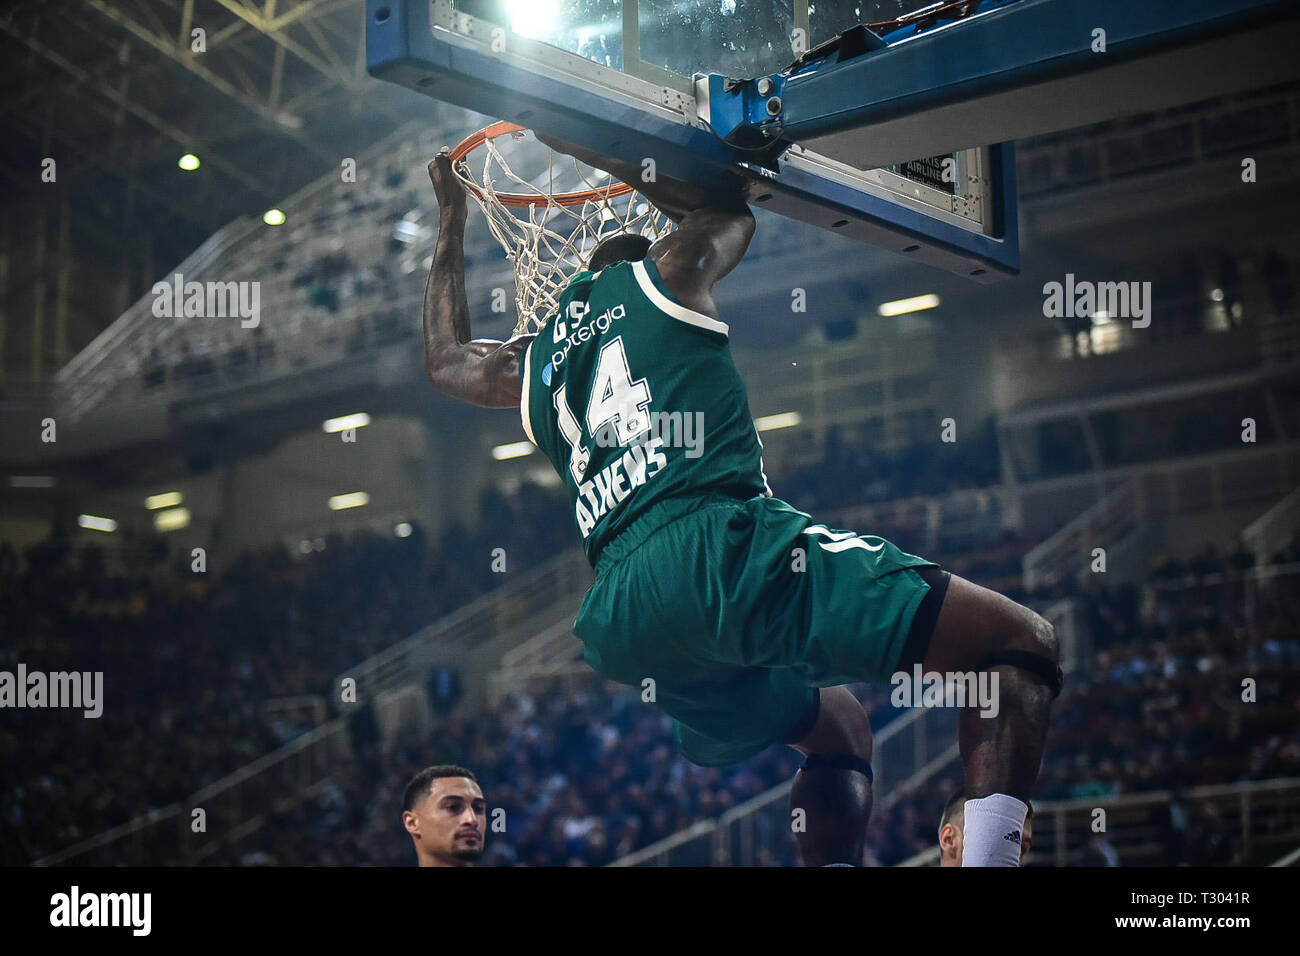 James Gist of Panathinaikos BC seen in action during the Turkish Airlines Euro league round 30 basketball match between Panathinaikos BC  and Buducnost VOLI at the Olympic Indoor Hall. score 87-67. Stock Photo